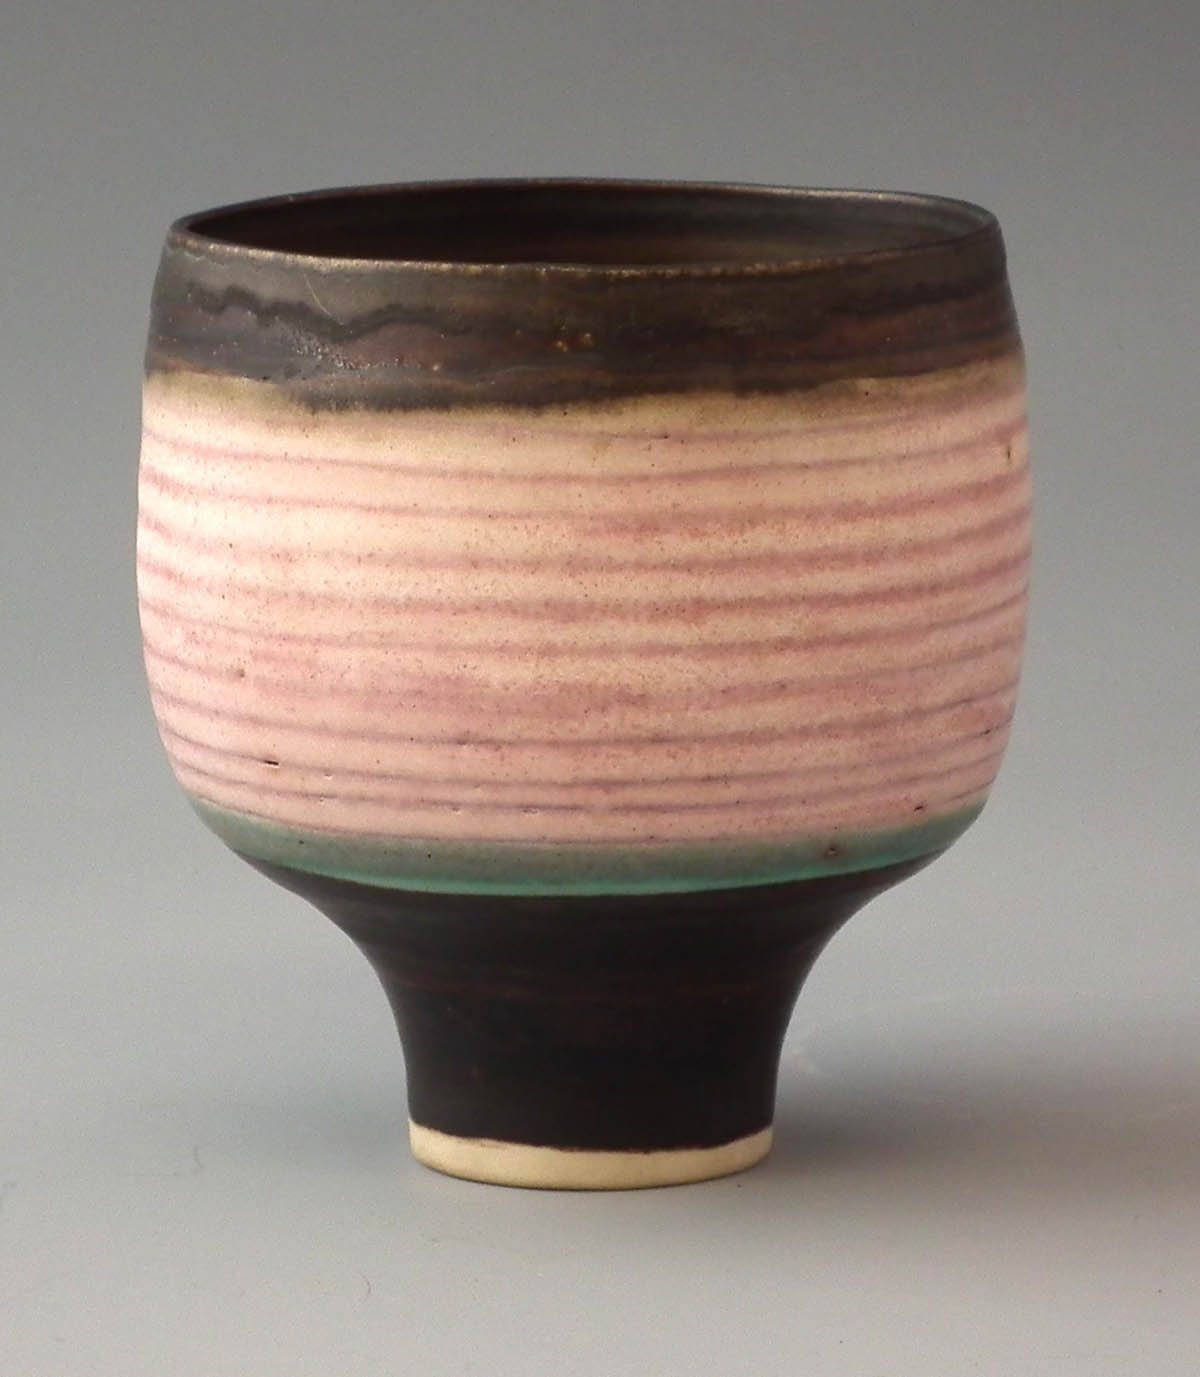 The vase, which sold for £8,500.